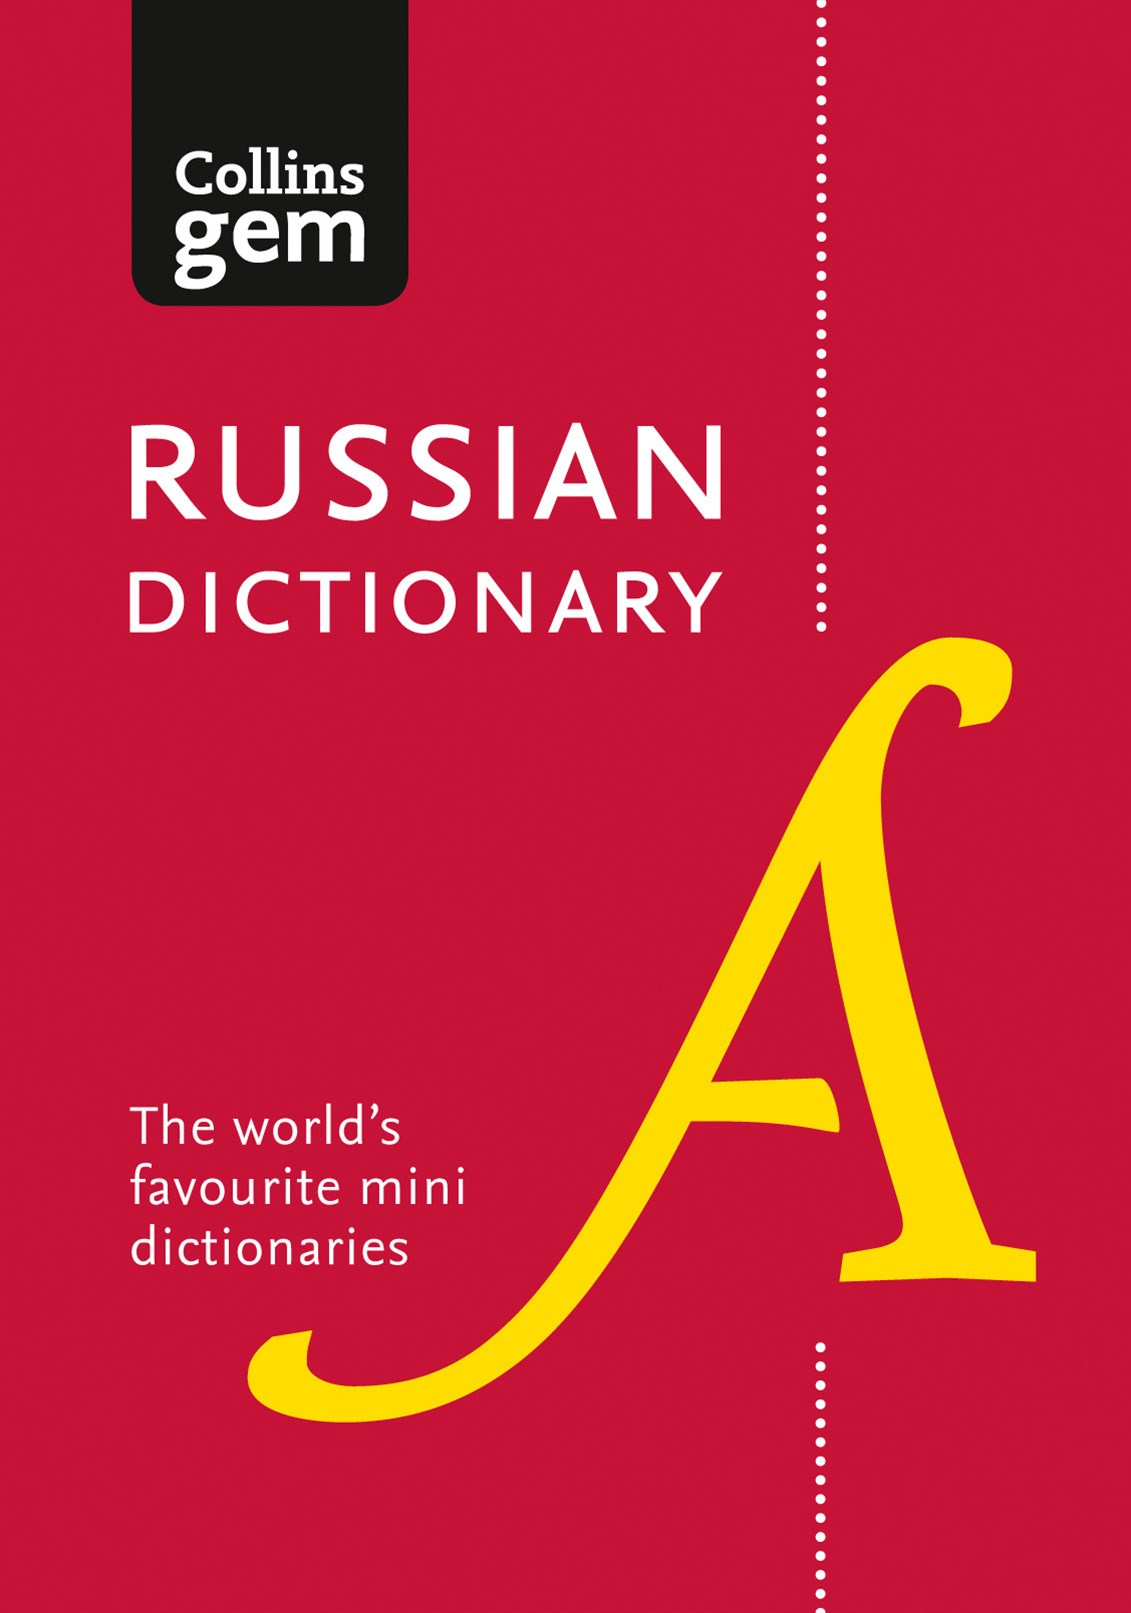 Collins Gem Russian Dictionary [4th Edition]